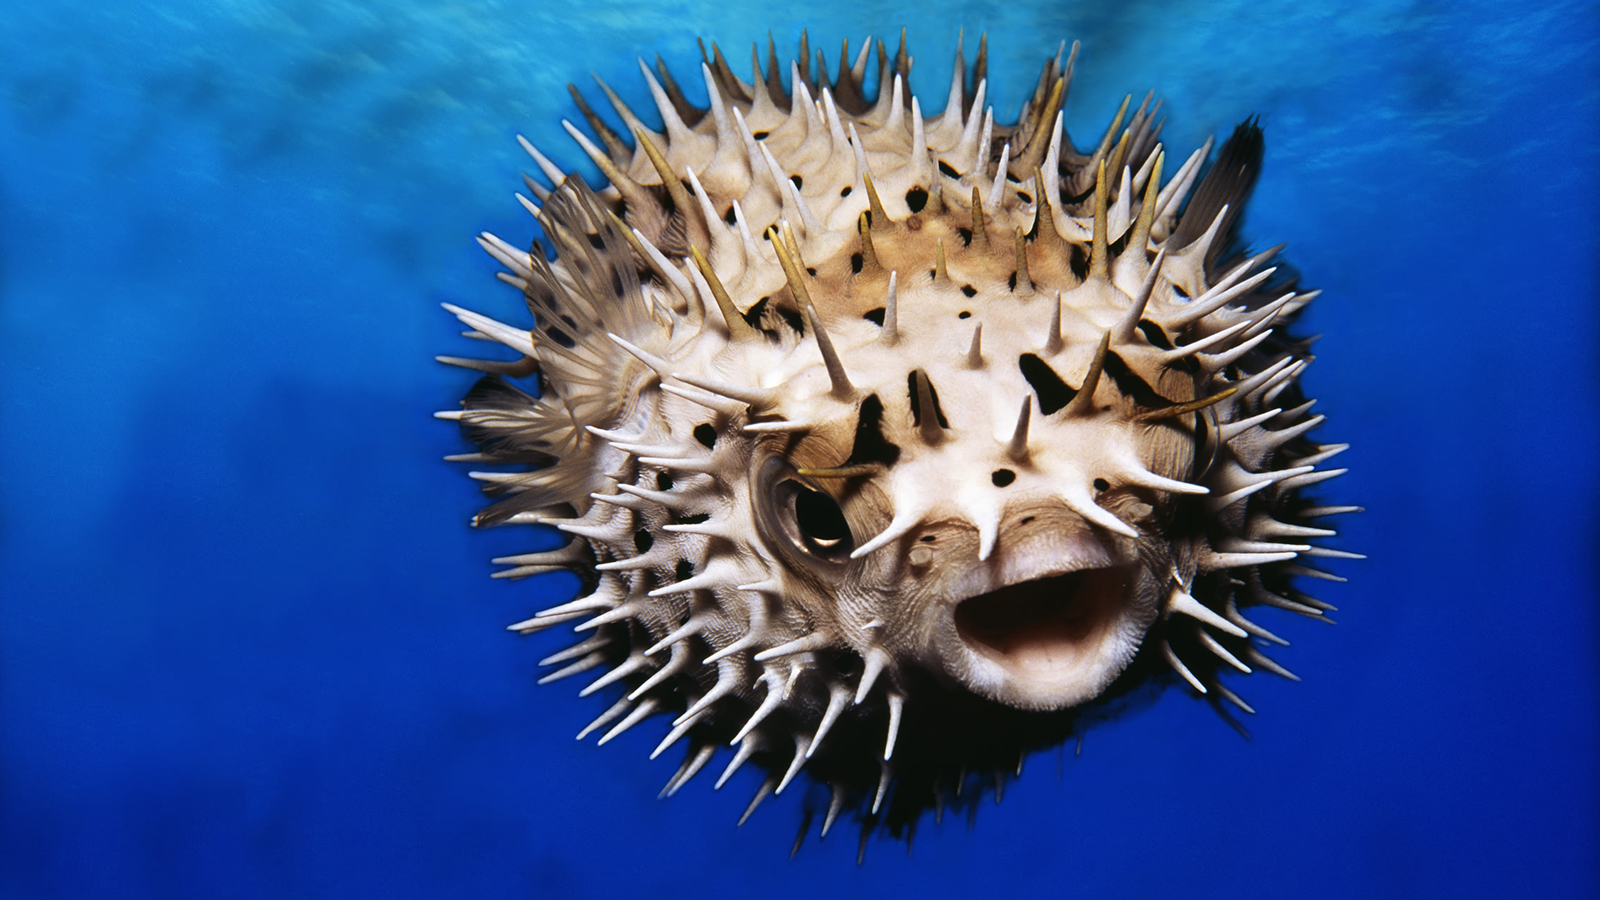 Pufferfish Backgrounds on Wallpapers Vista